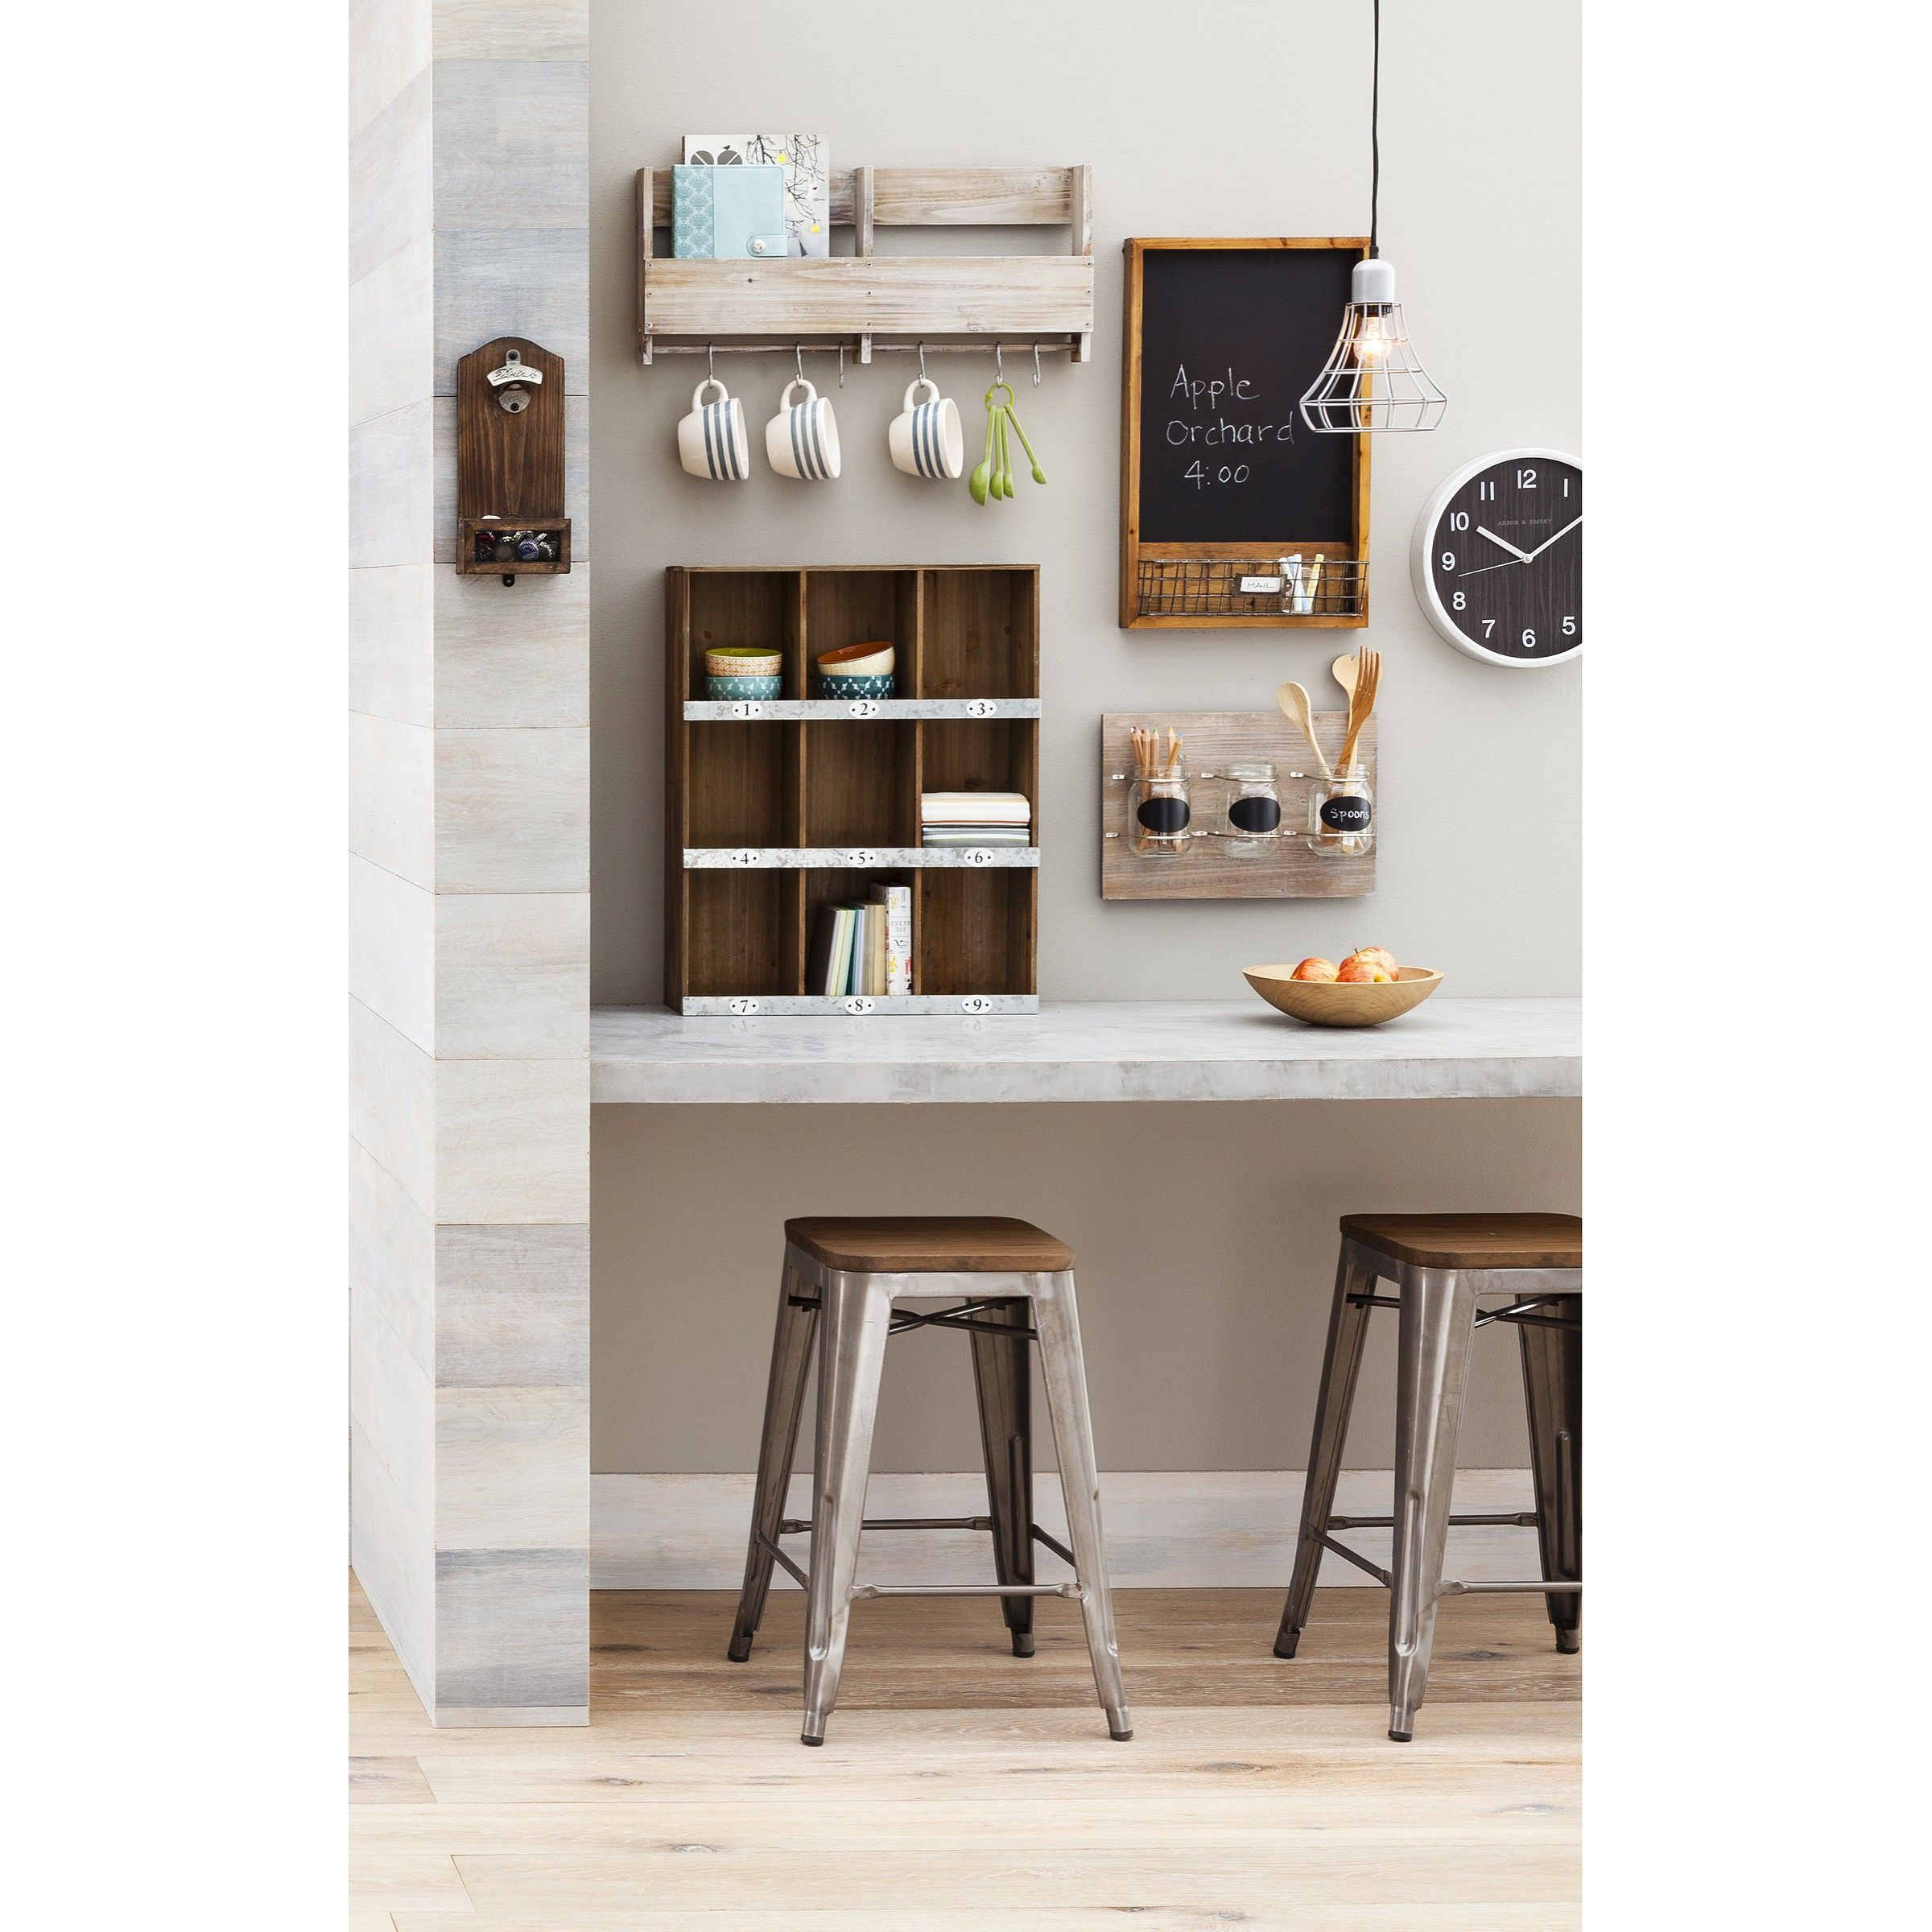 wooden shelf with s hooks - threshold™ | wooden wall shelves